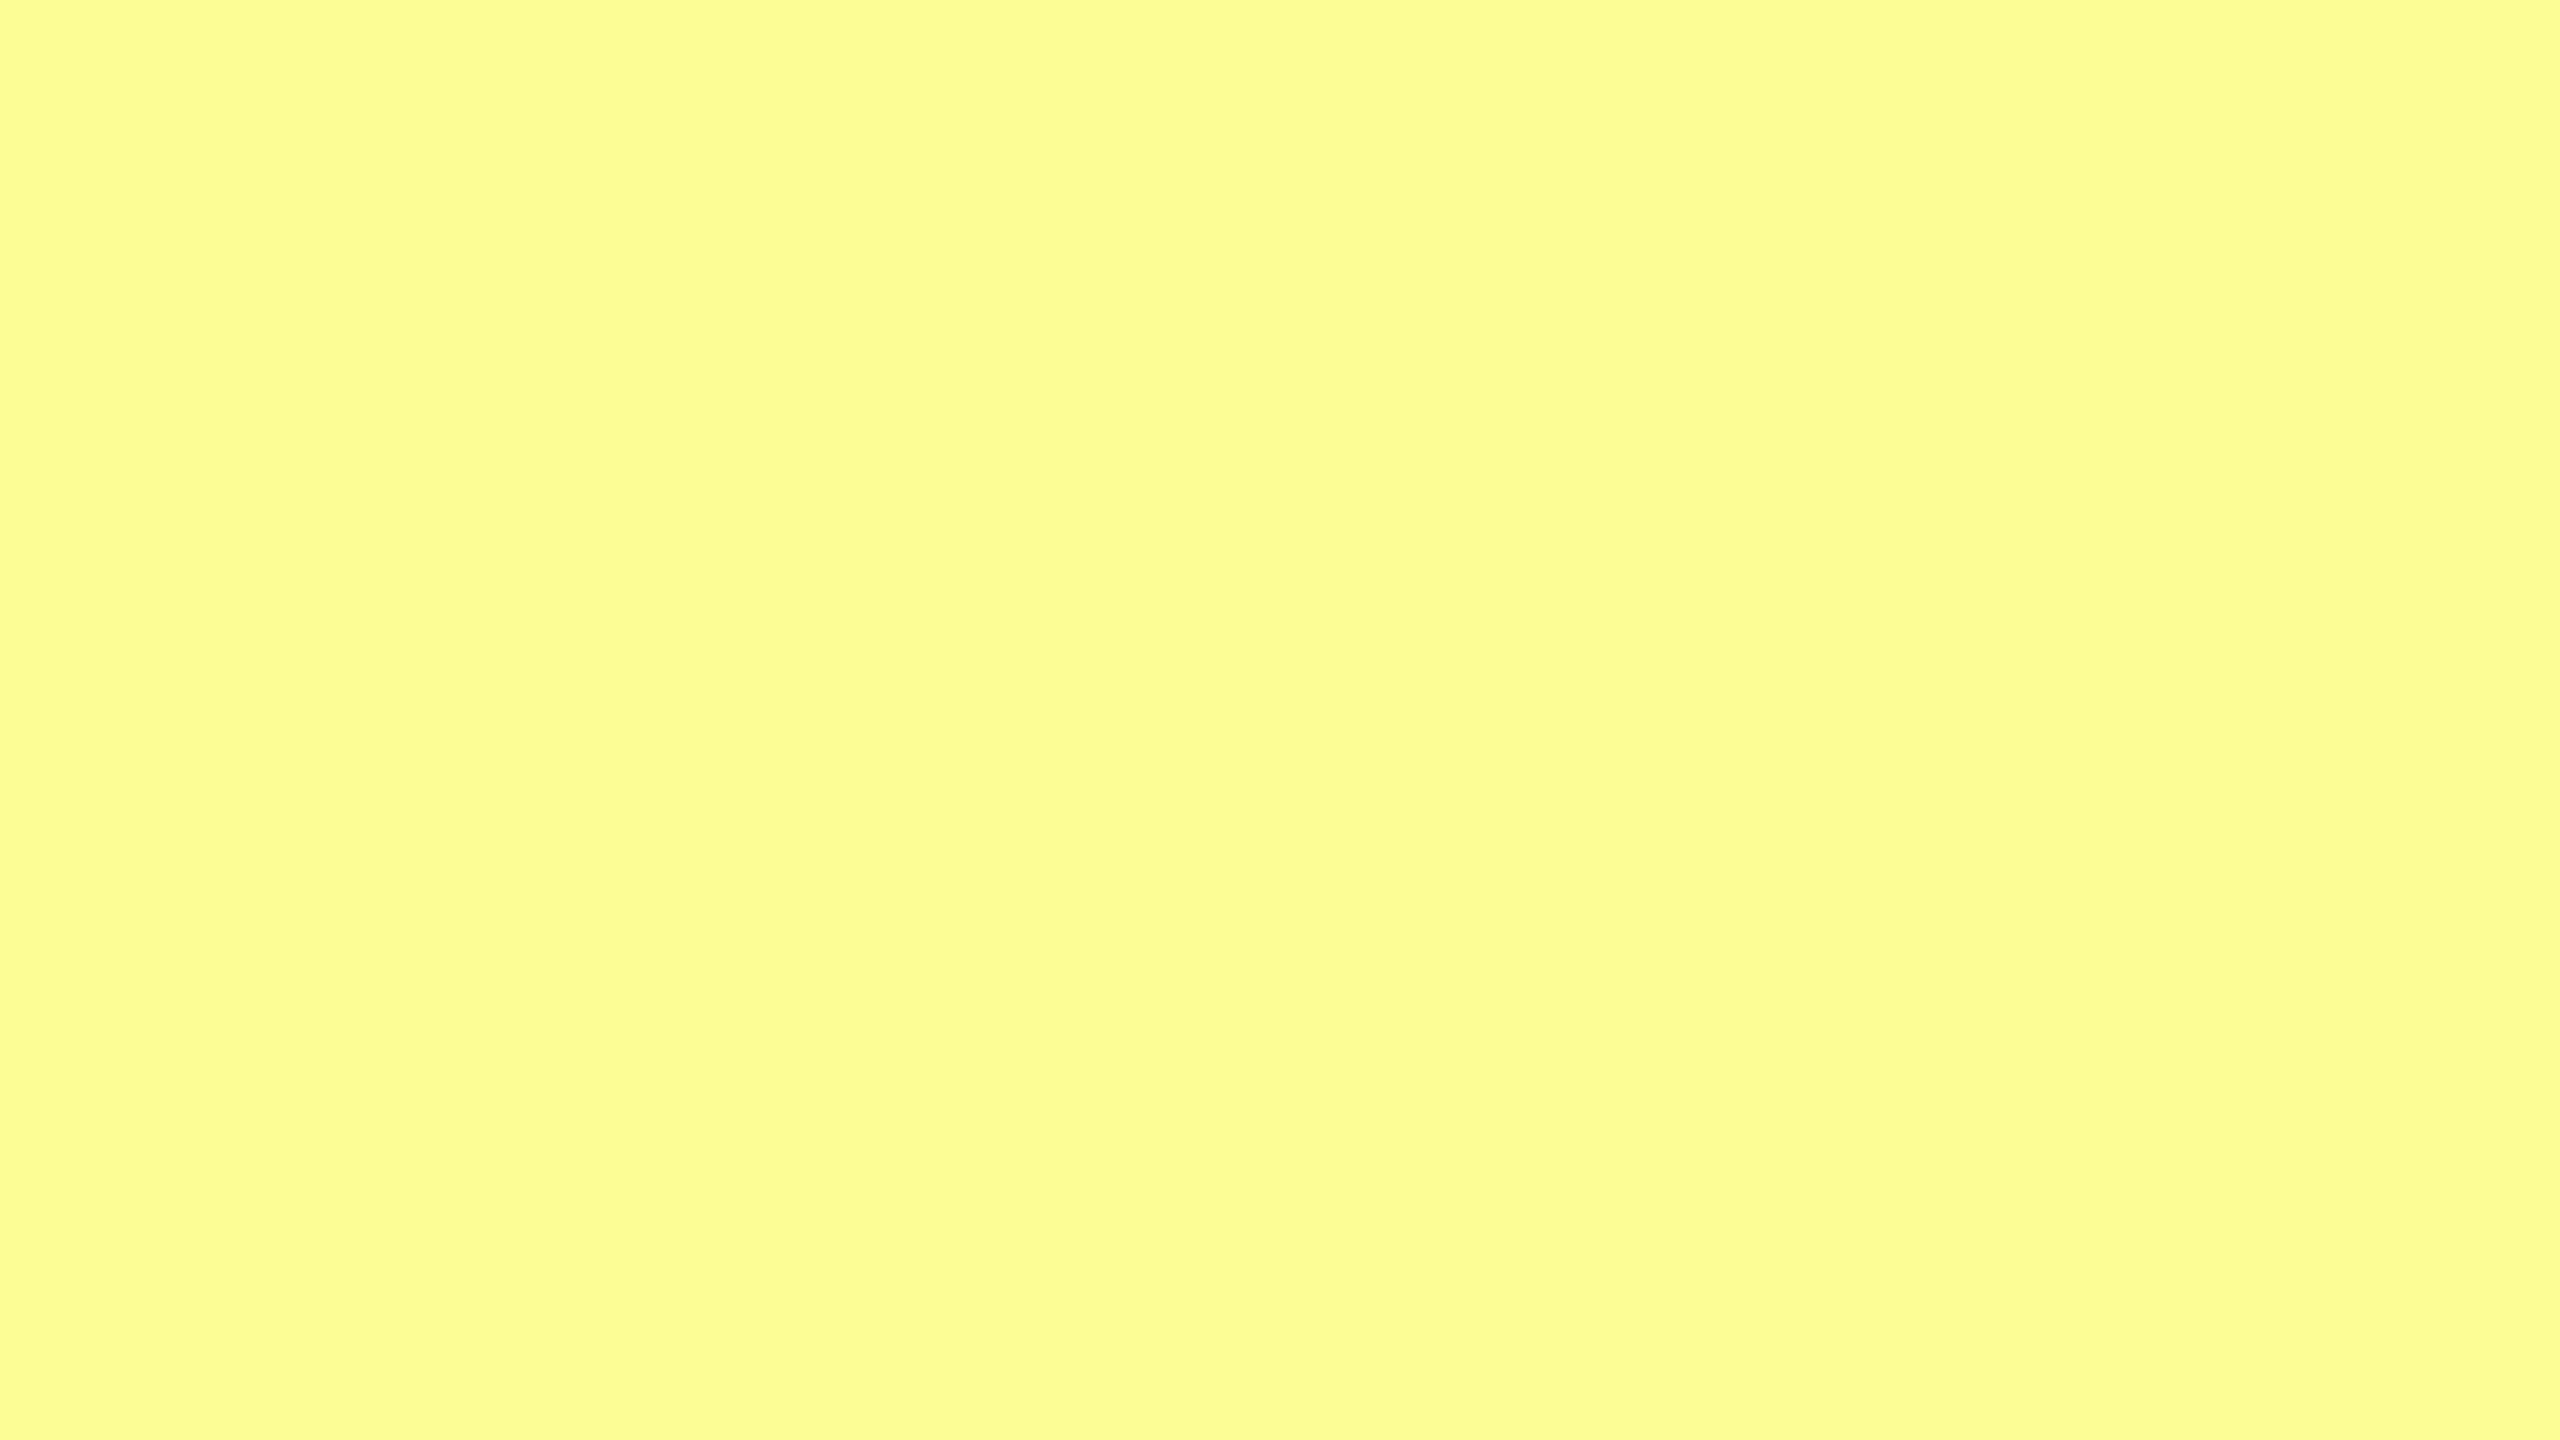 2560x1440 Pastel Yellow Solid Color Background